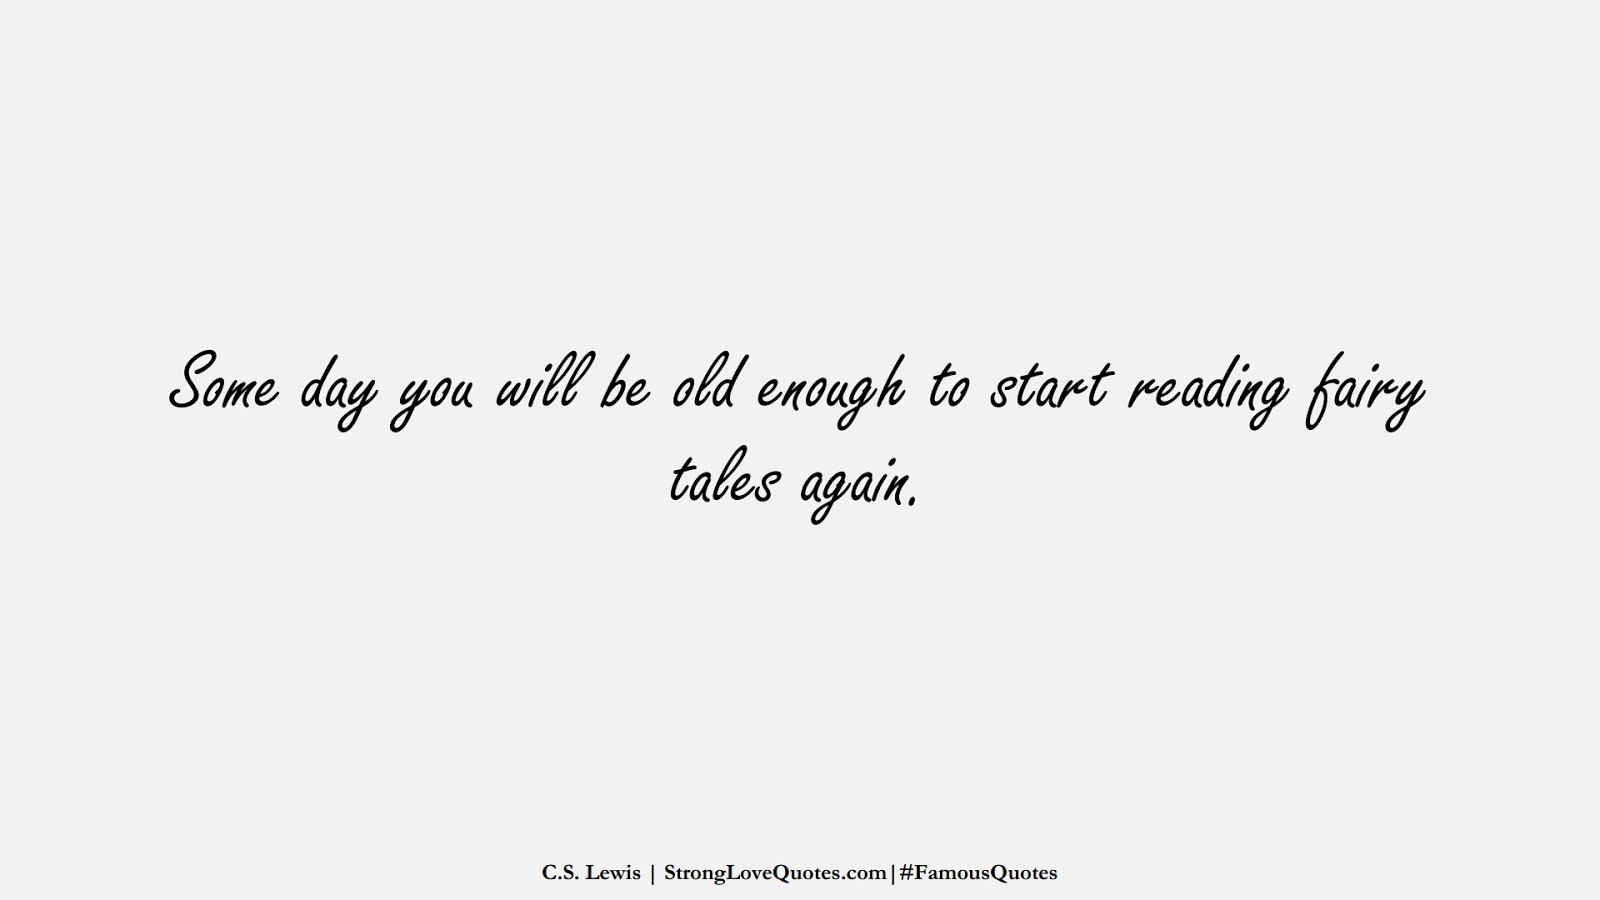 Some day you will be old enough to start reading fairy tales again. (C.S. Lewis);  #FamousQuotes